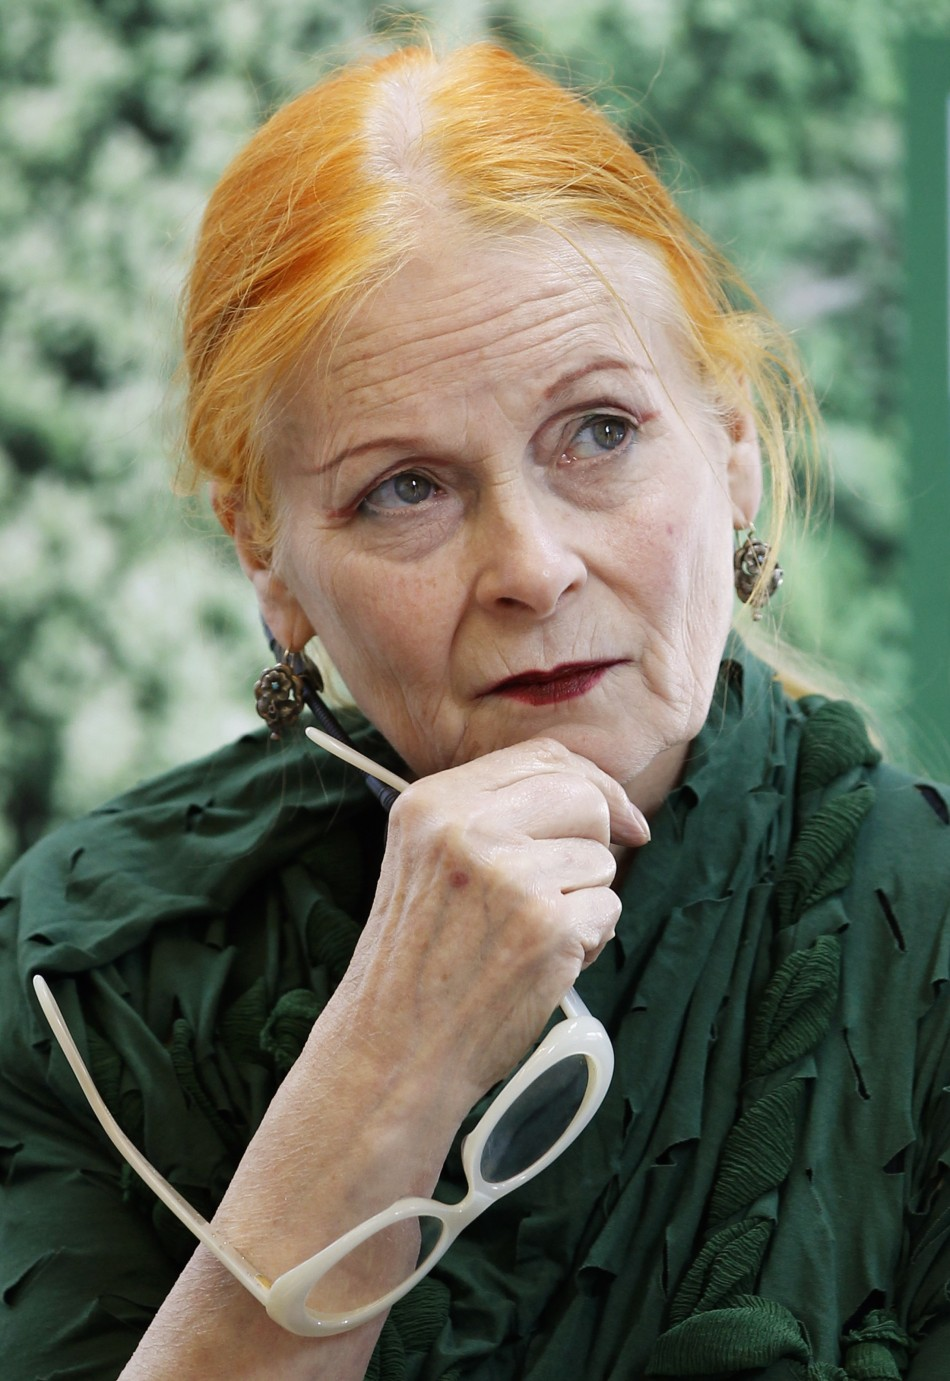 Vivienne Westwood Shaves Her Head In Climate Change Protest